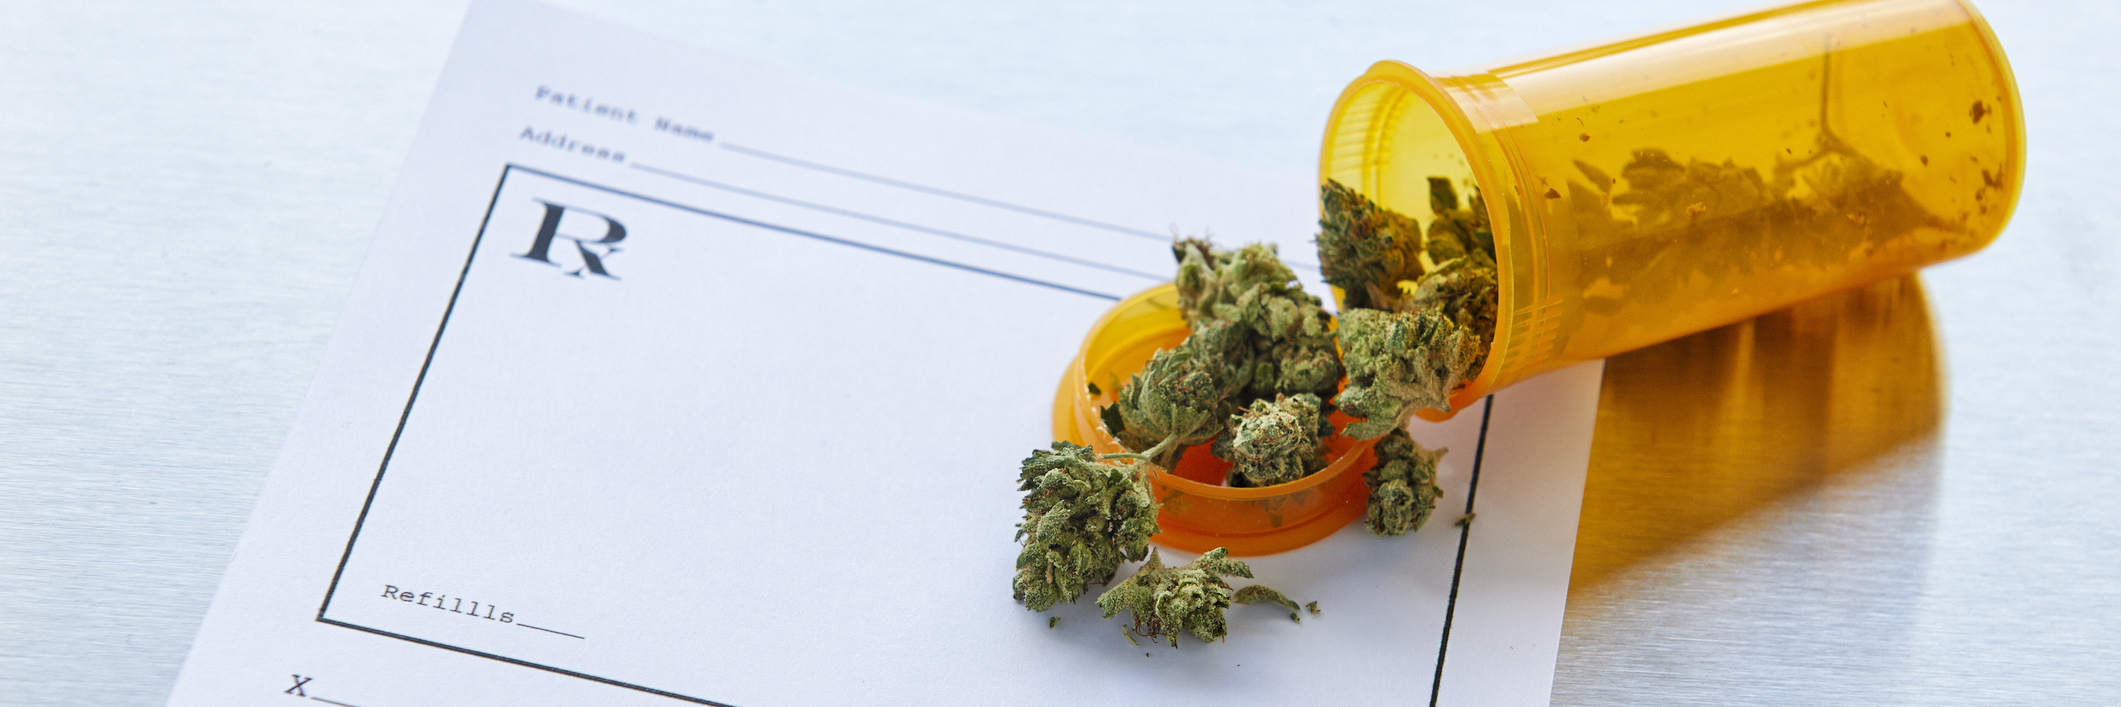 photo of marijuana spilled over a prescription